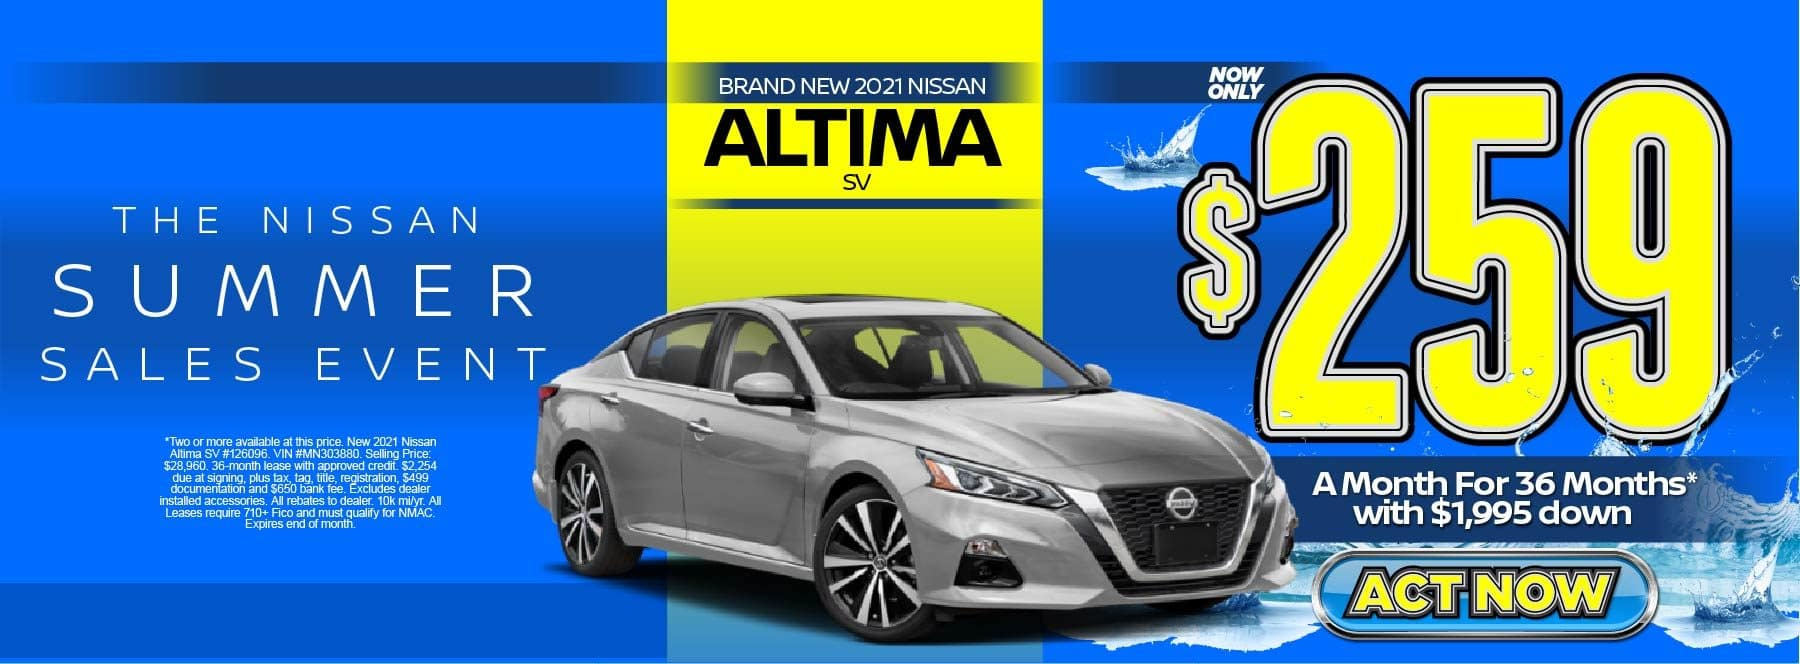 New 2021 Nissan Altima SV – Lease for $259/mo for 36 months with $1,995 Down* Act now.